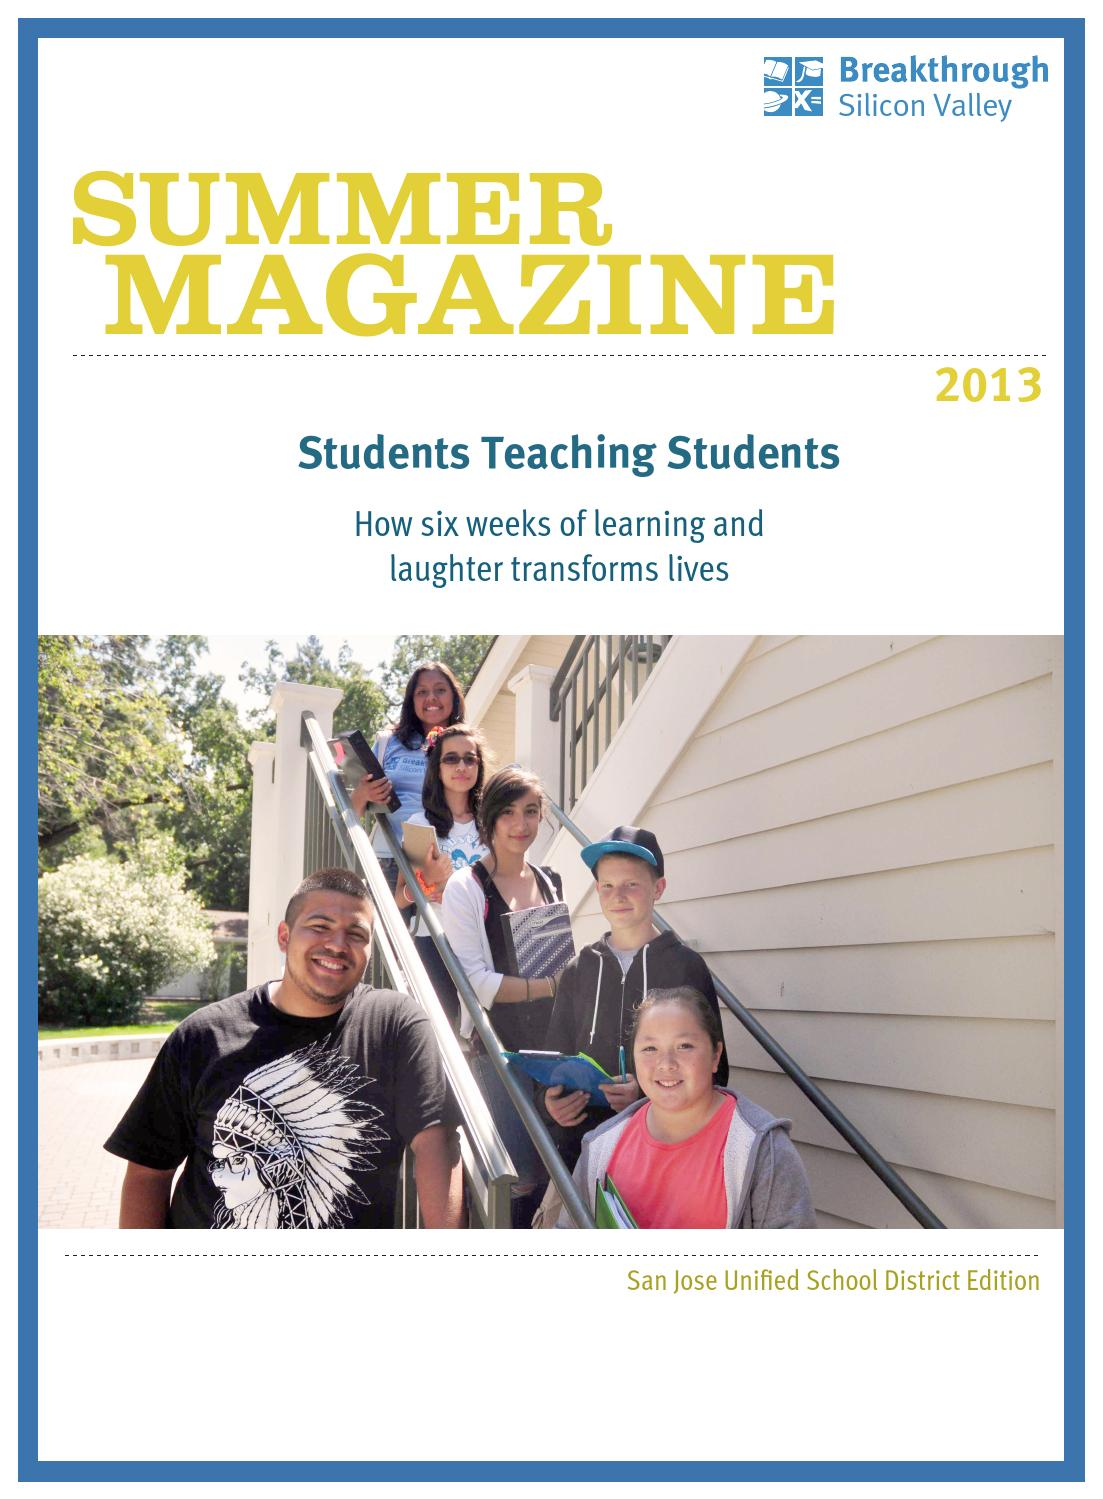 breakthrough silicon valley summer magazine by breakthrough breakthrough silicon valley summer magazine 2013 by breakthrough silicon valley issuu